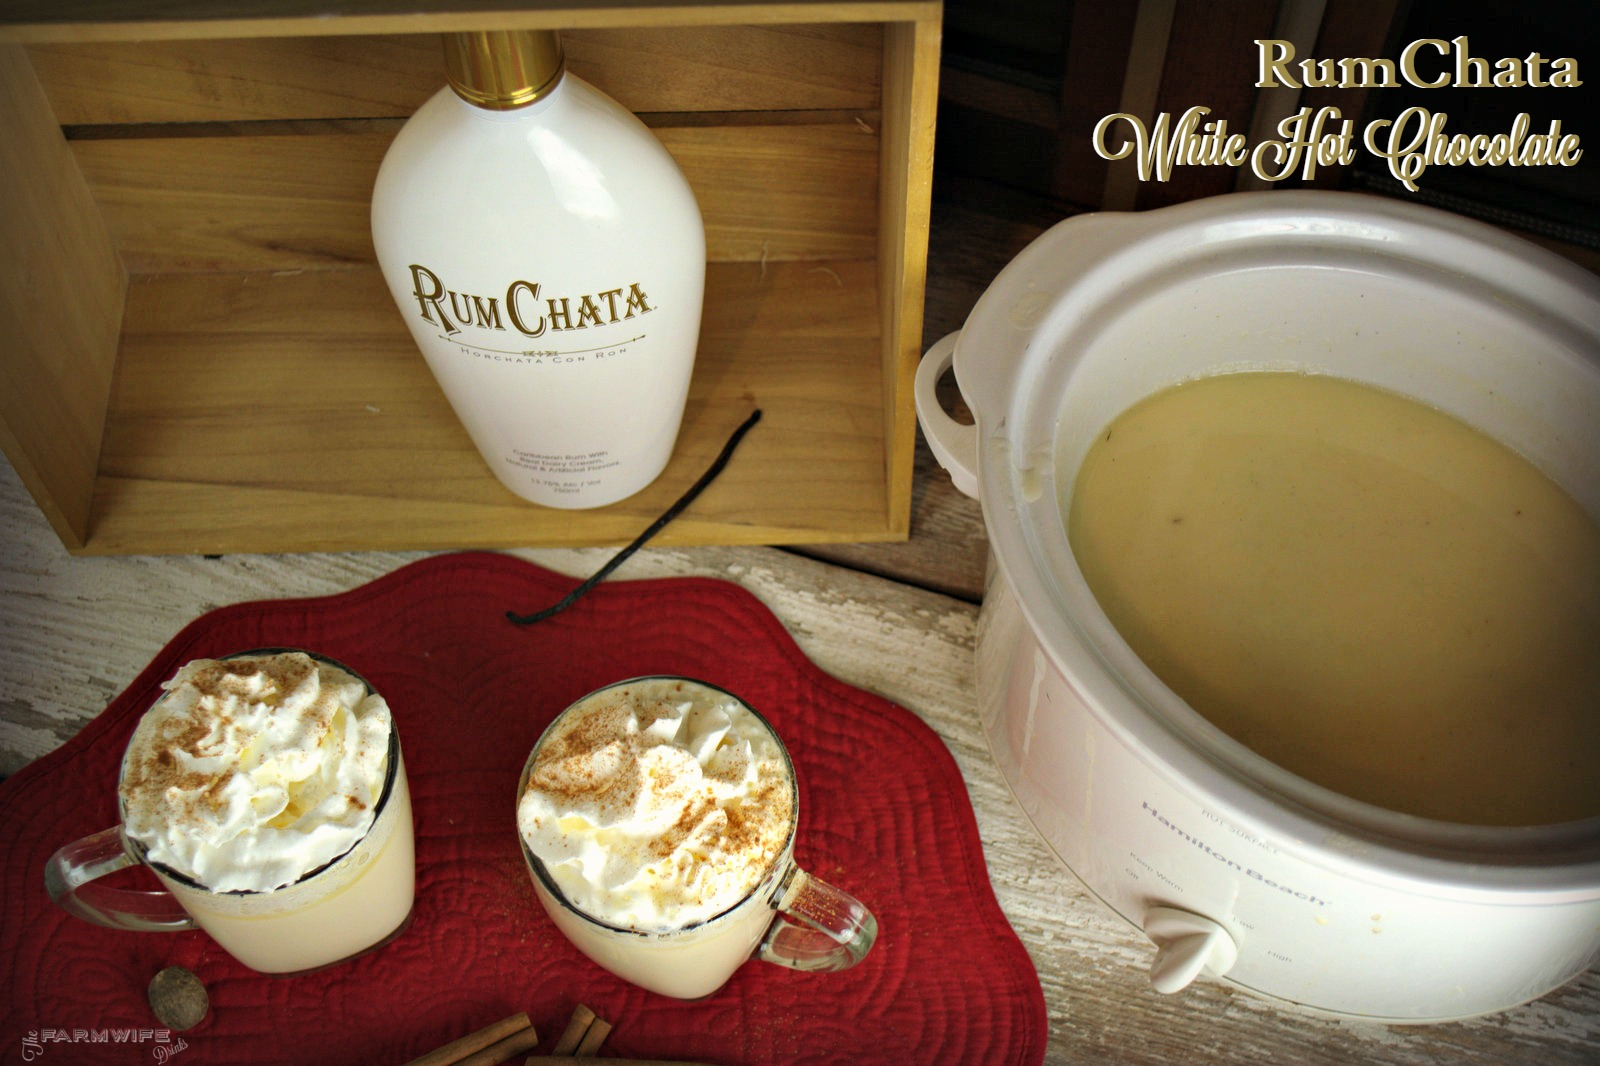 Crock Pot Rumchata White Hot Chocolate is by far the richest, most decadent white hot chocolate I have ever had. Don't want booze in your white hot chocolate, no problem. Just don't add it.